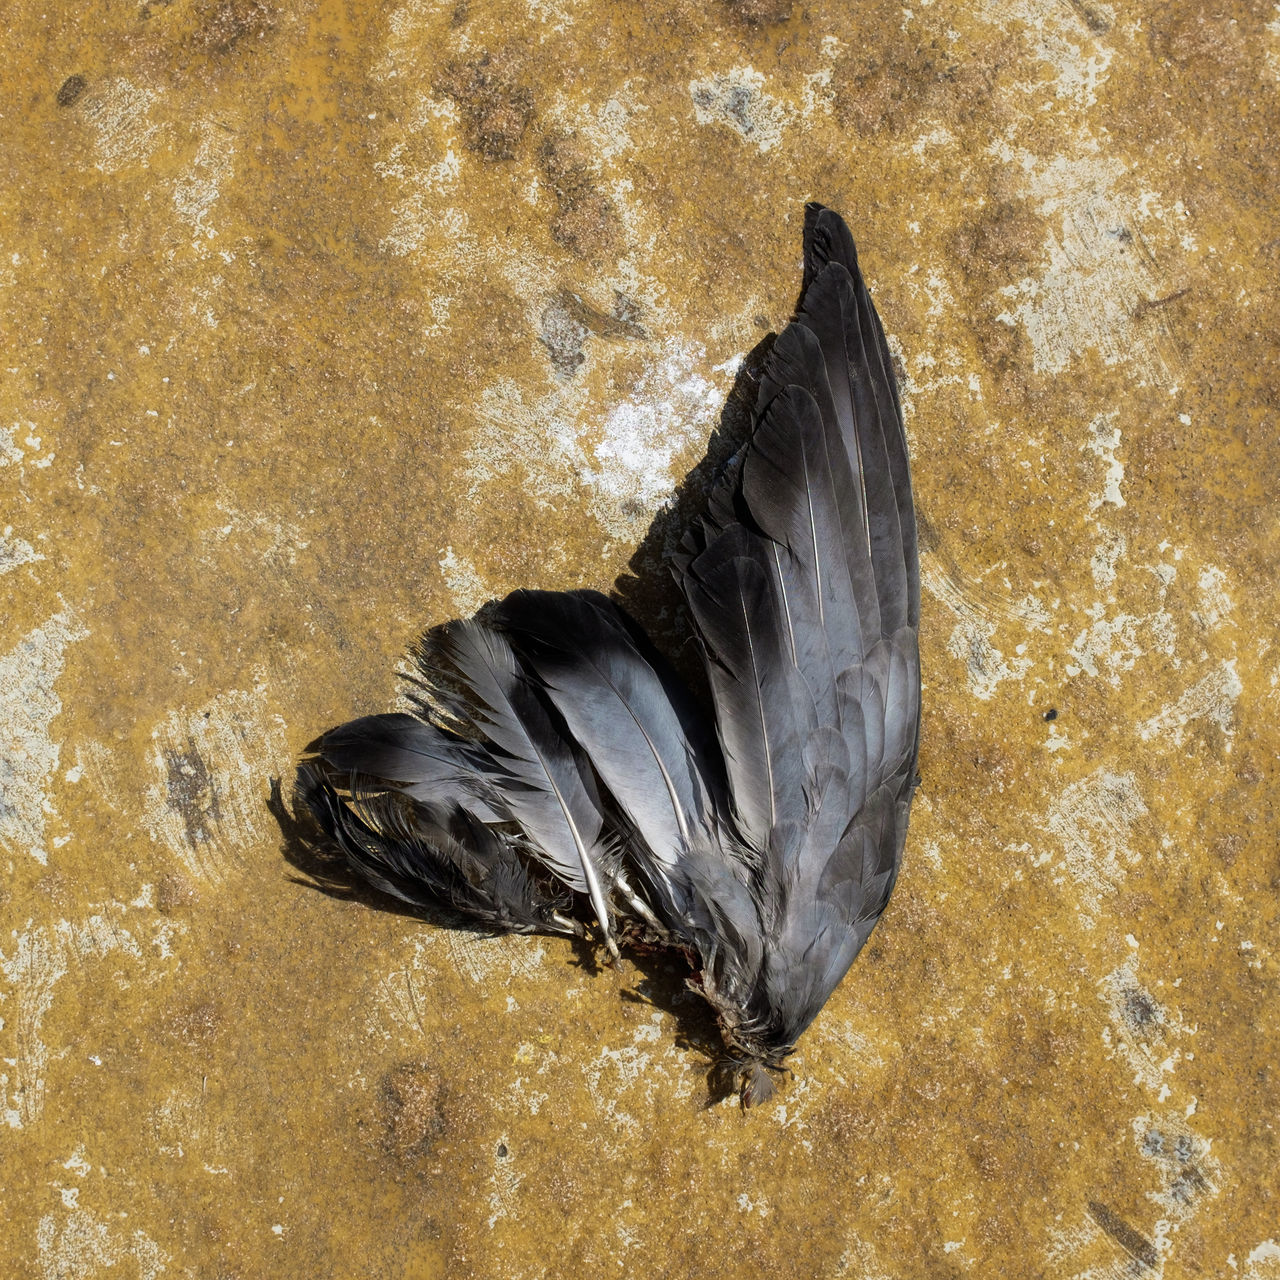 A bird's wing found while exploring the streets of Porto, Portugal. This scenery kept me wondering what might have happened to this poor fellow. Animal Themes Animal Wildlife Bird Birds Close-up Day Dead Animal Fly Nature No People Outdoors Portugal Square Sunlight Wing First Eyeem Photo